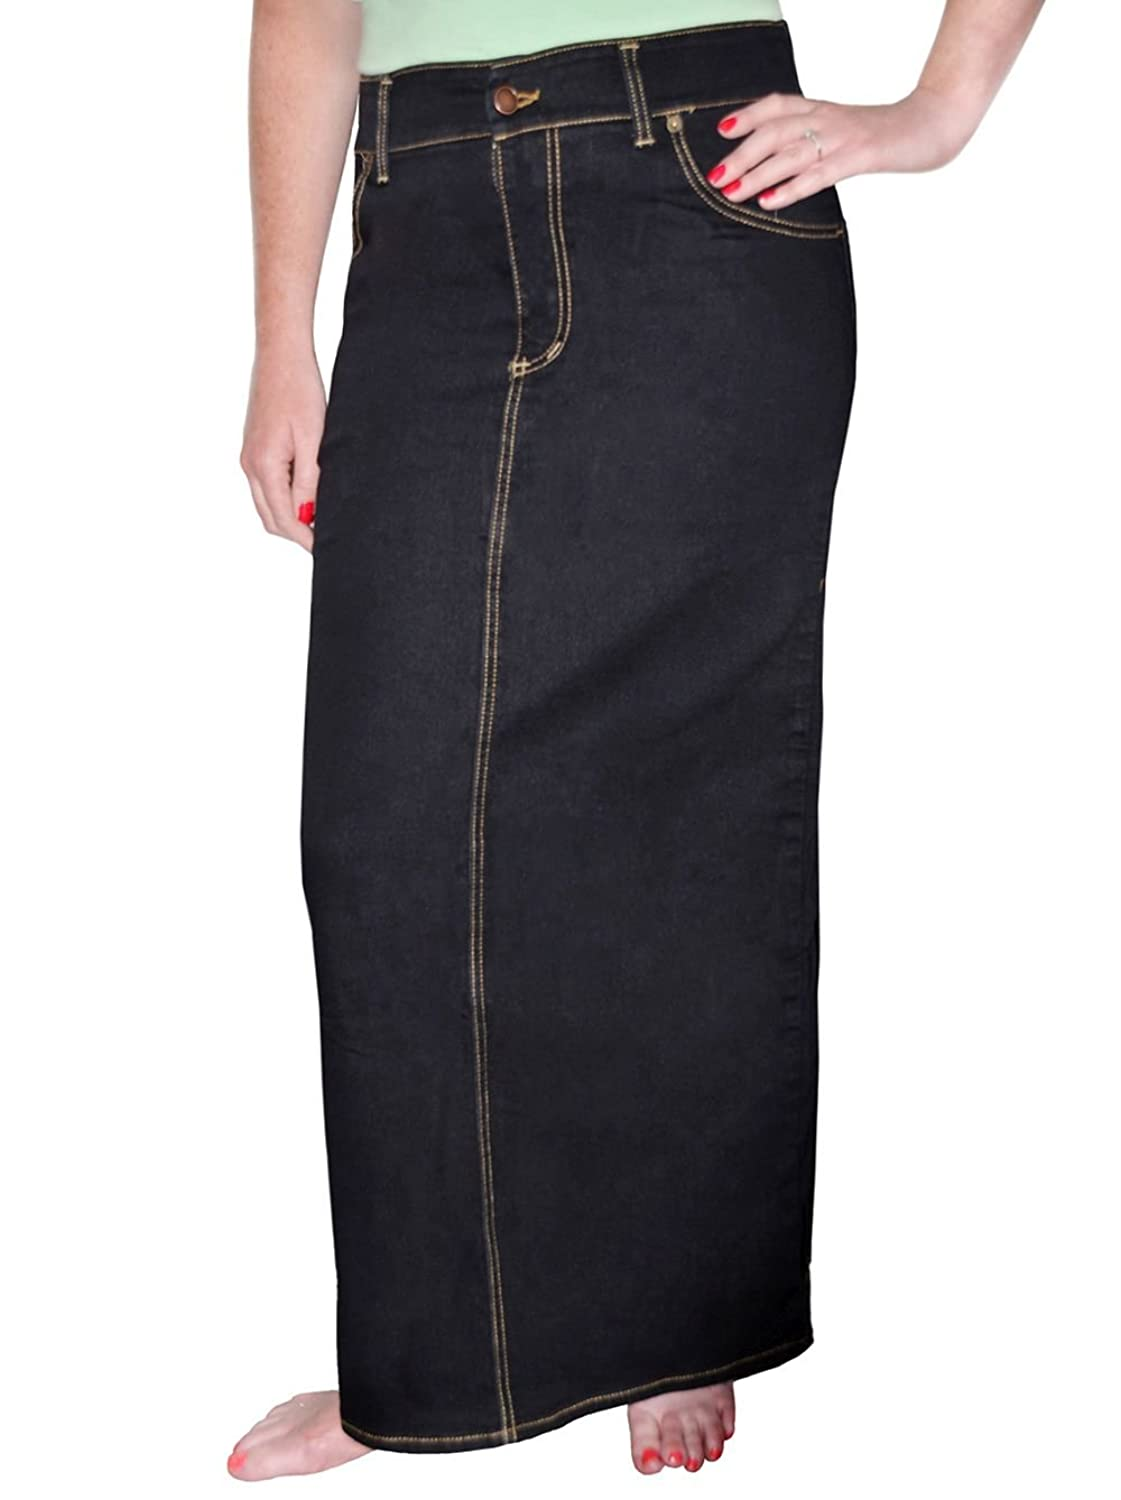 fa6ec1707a Classic straight maxi pencil jean skirt. internal elastic waistband offers  customizable sizing. Front button and zipper closure and belt loops.